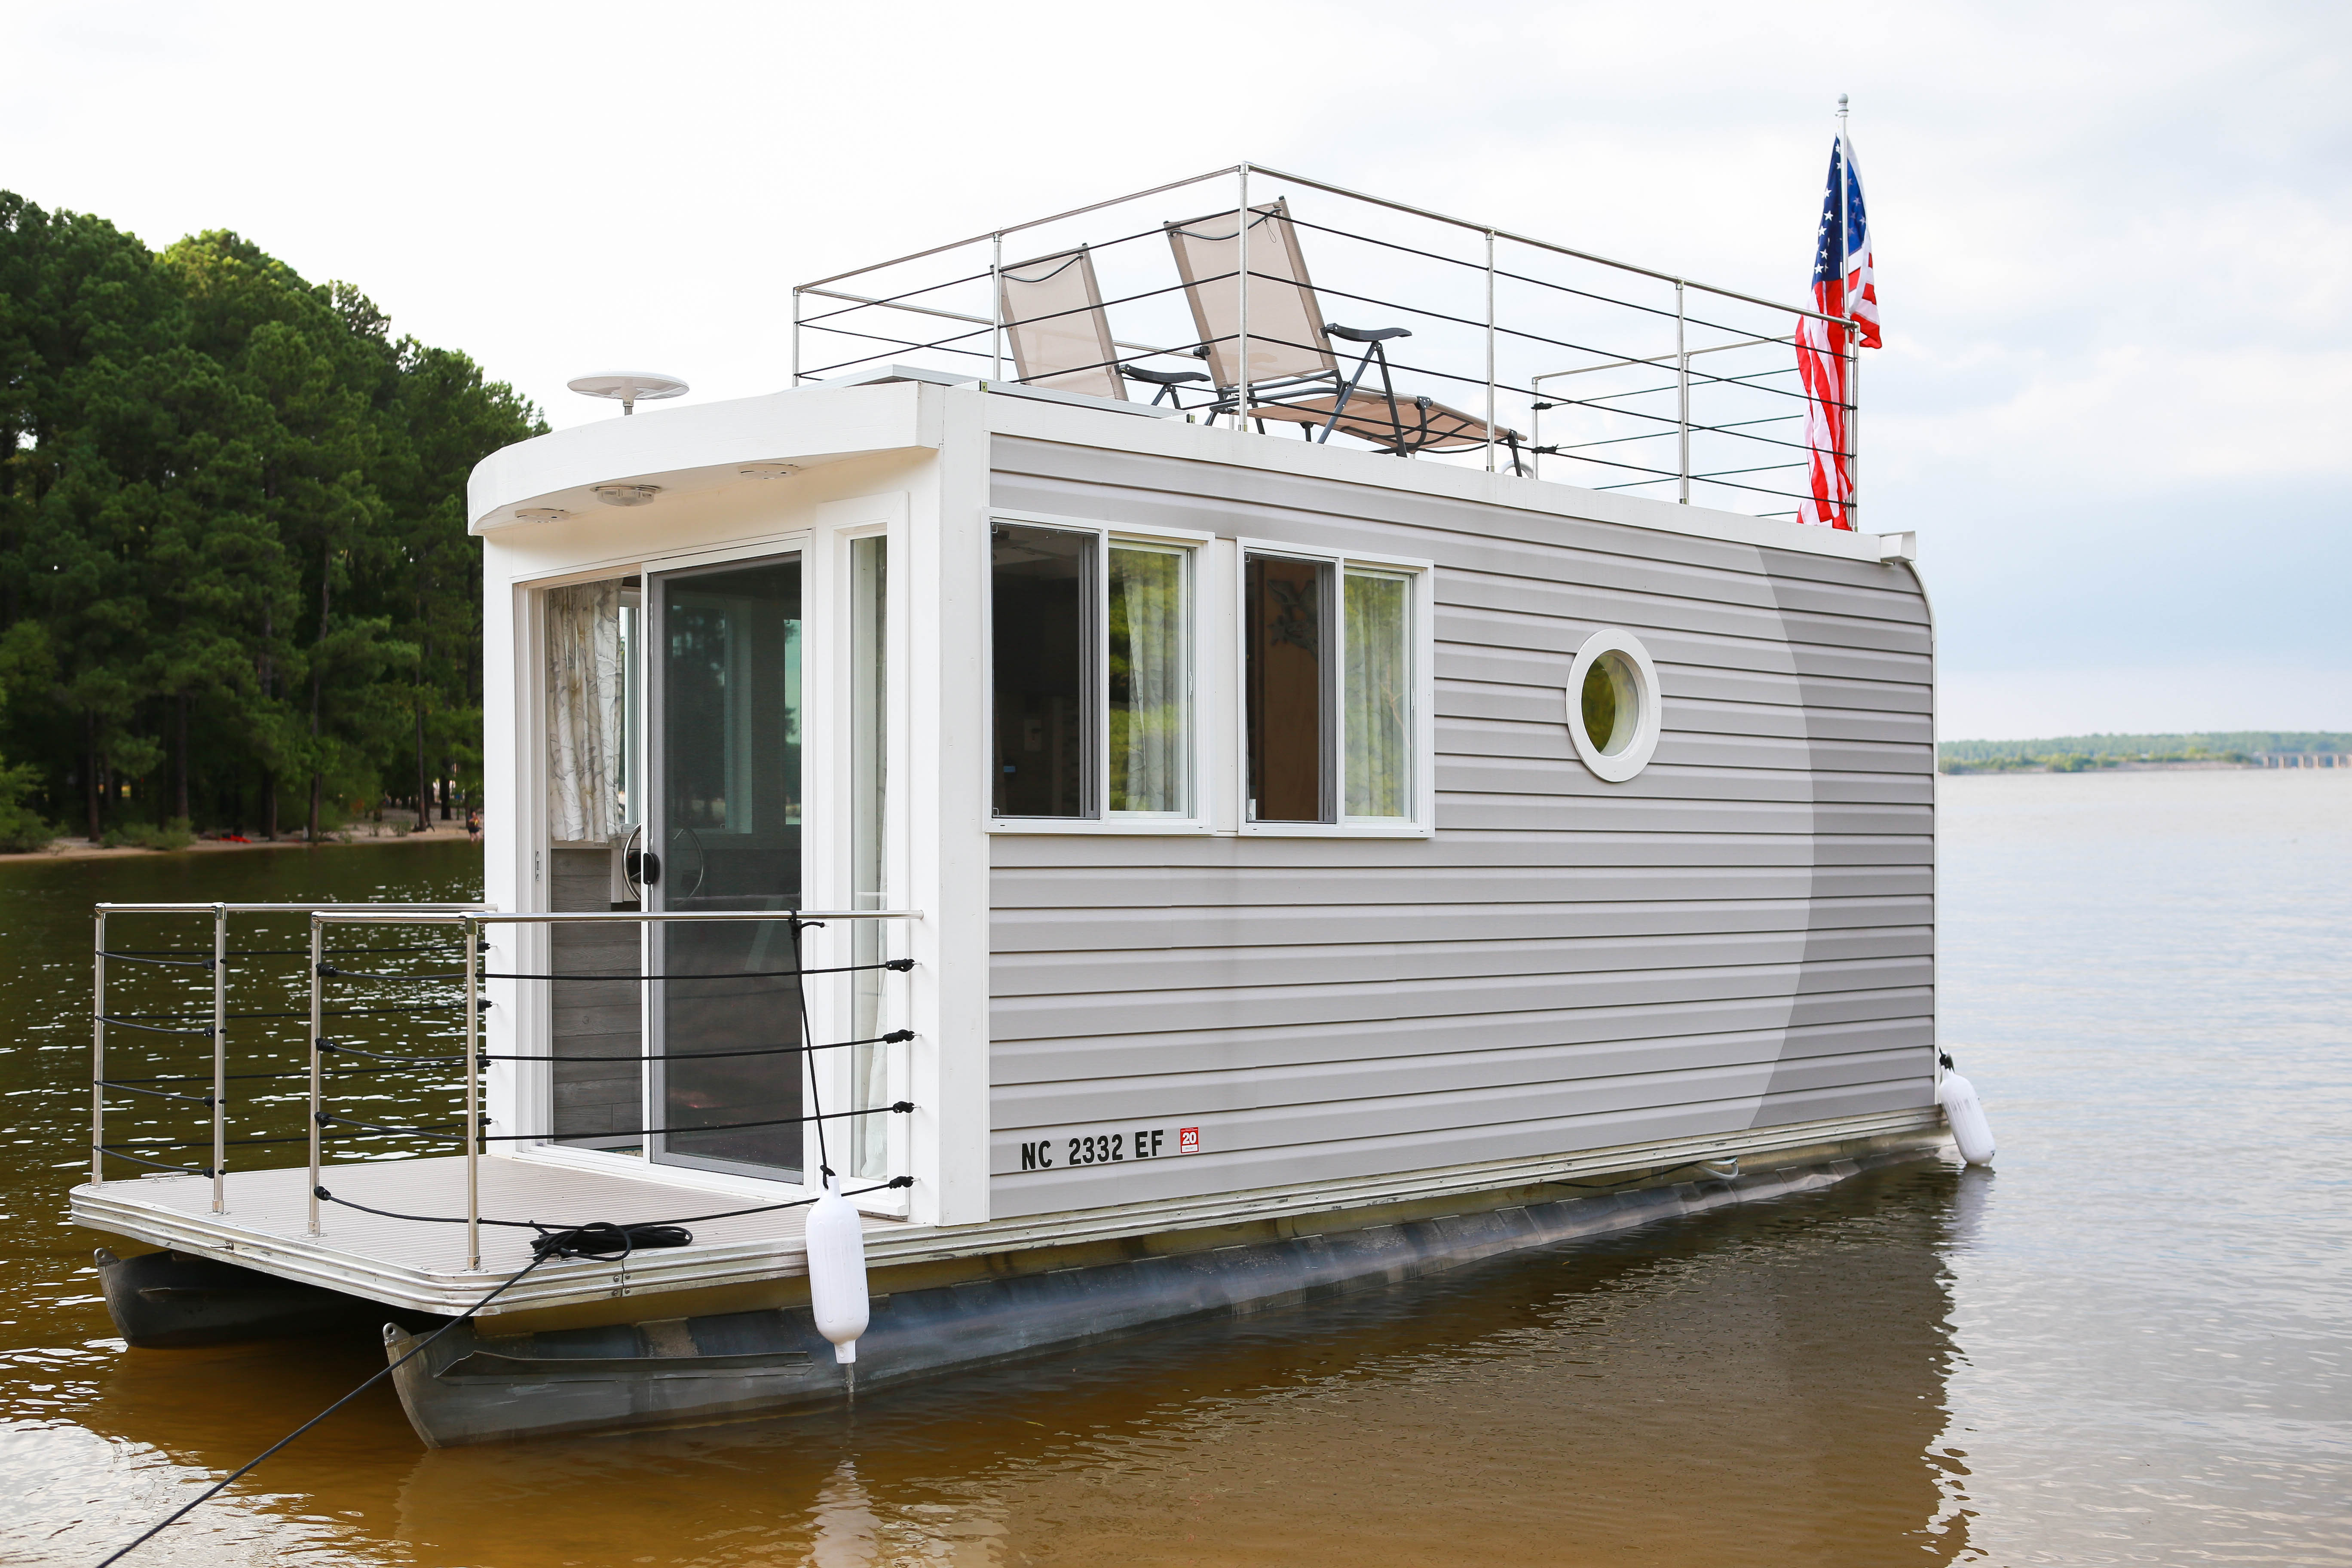 Ever heard of a tiny houseboat? You can rent one at Jordan ... on mobile home camp, mobile home sunflower, mobile homes with garages, mobile home loft, mobile home mansion, mobile home hurricane, mobile home chalet, mobile home yacht, mobile home duplex, mobile home castle, mobile home house, mobile home office, mobile home trailer, mobile home studio, mobile home hotel, mobile home custom, mobile home camper, mobile home condo, mobile home room, mobile home motel,